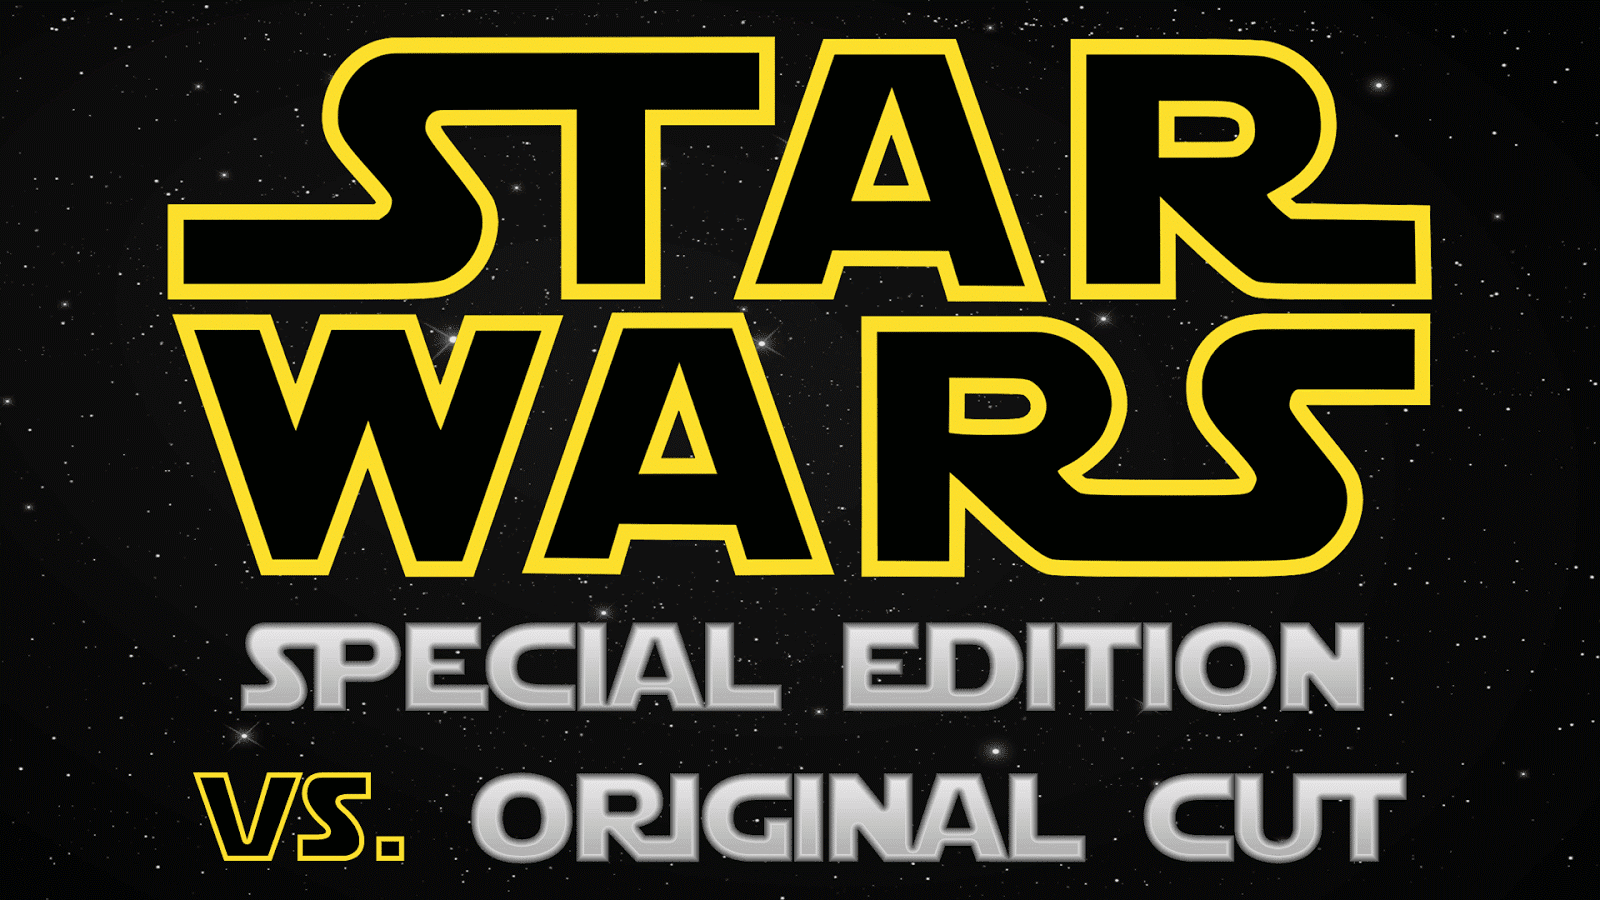 Star Wars changes special editions versions debate